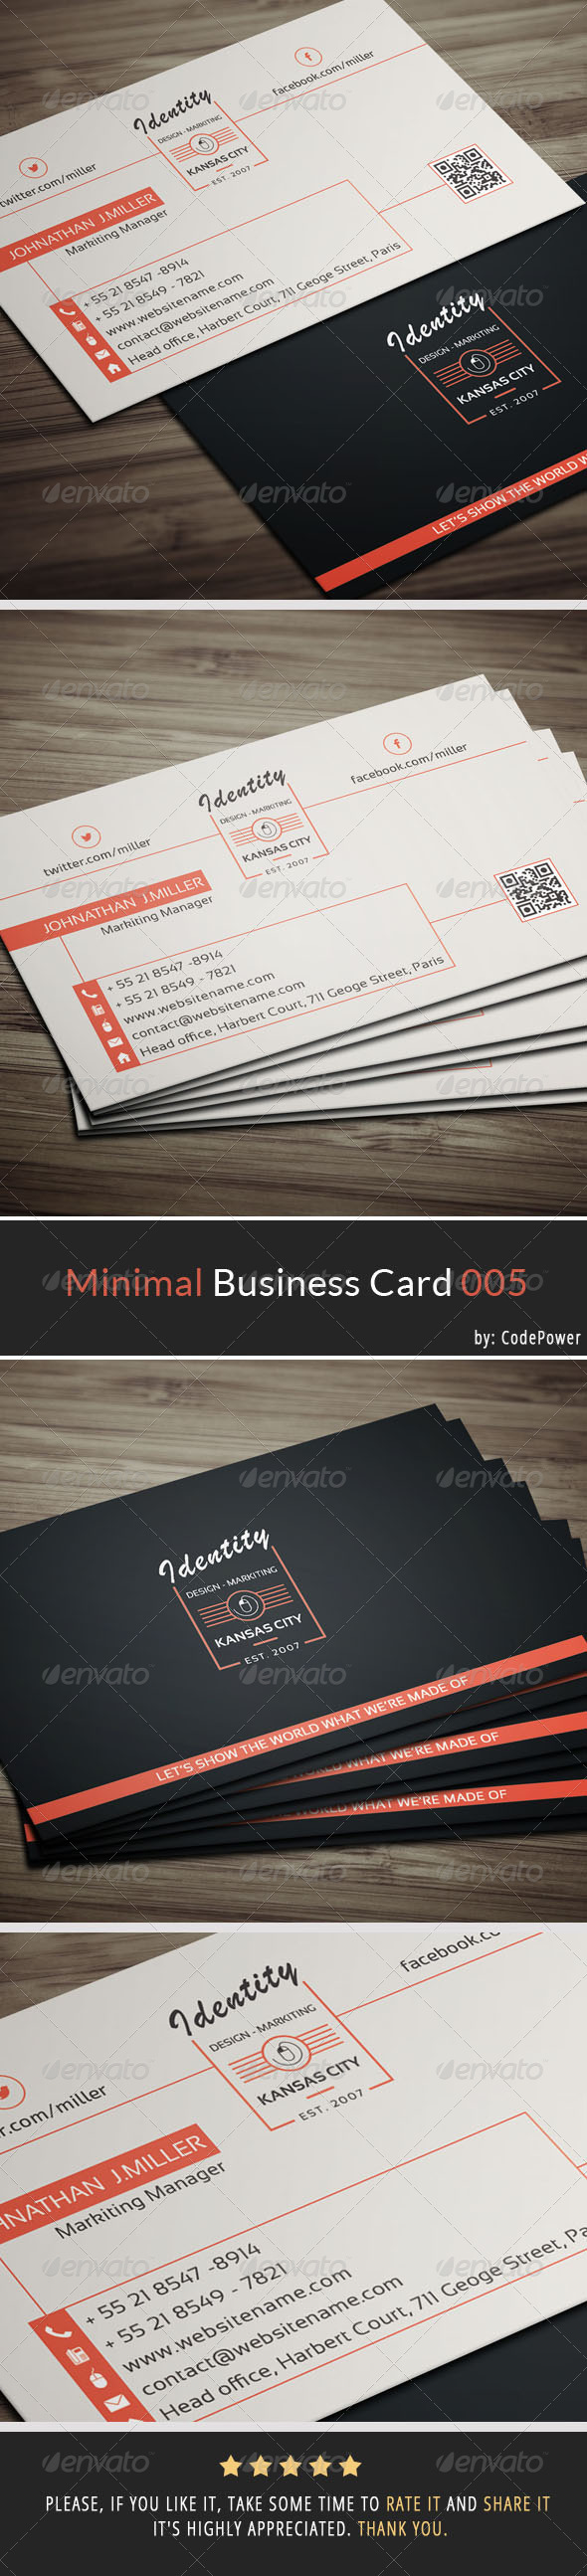 Minimal Business Card 005 - Corporate Business Cards